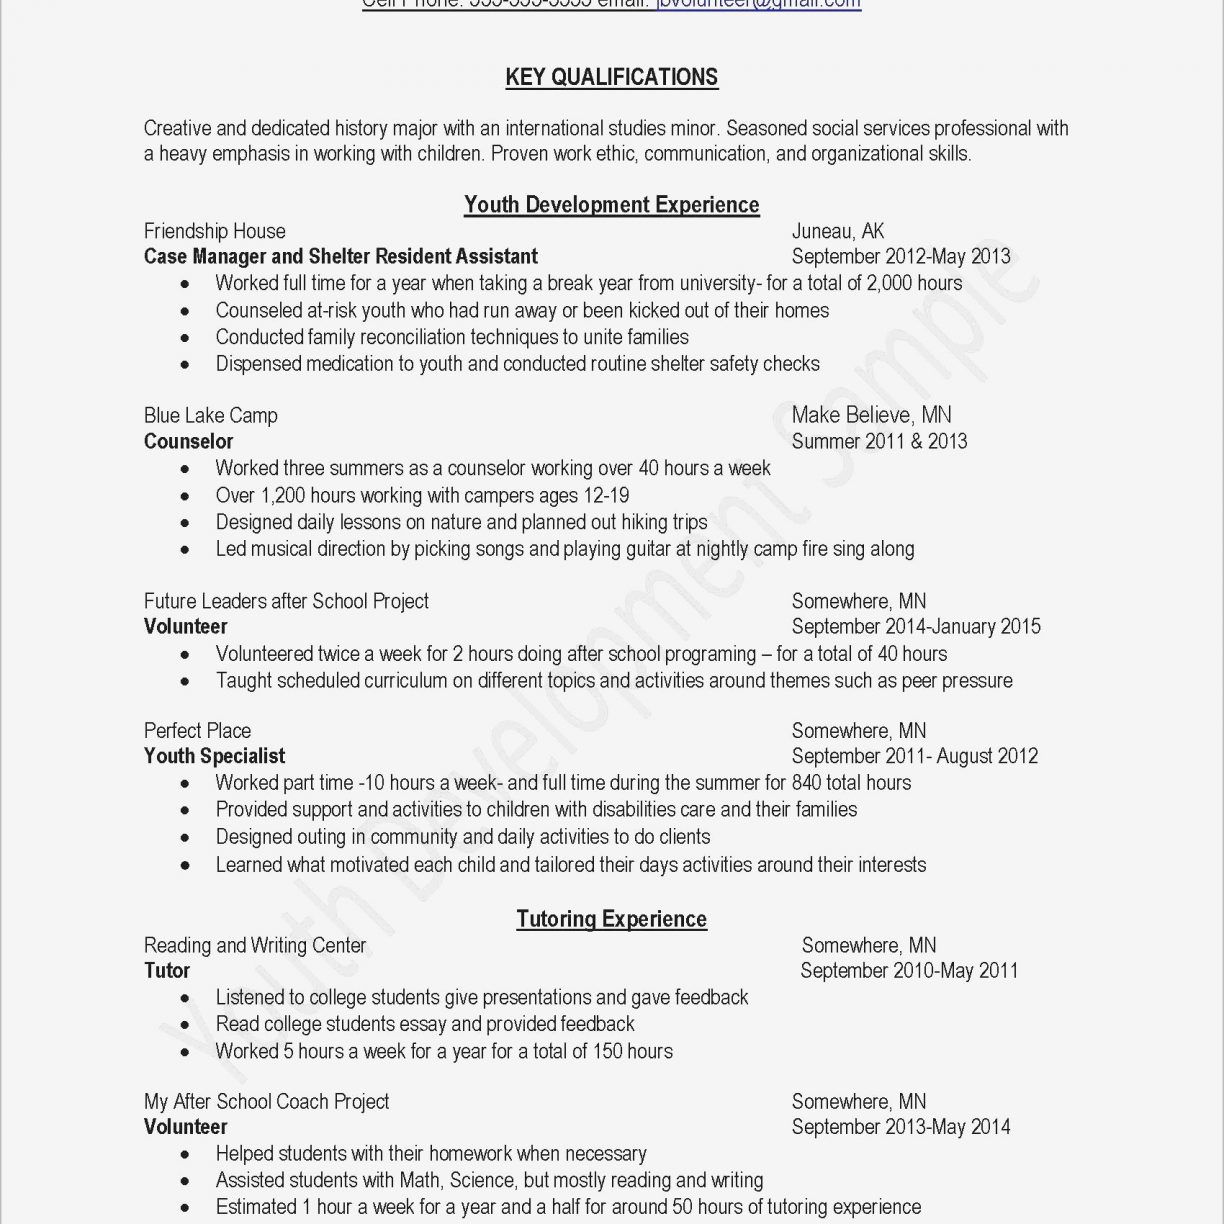 012 Free Resume Templates Pdf Download Samplesormat Or Doc Builder Easy 1224x1224 Essay Example Anarchism And Other Incredible Essays Emma Goldman Summary Full